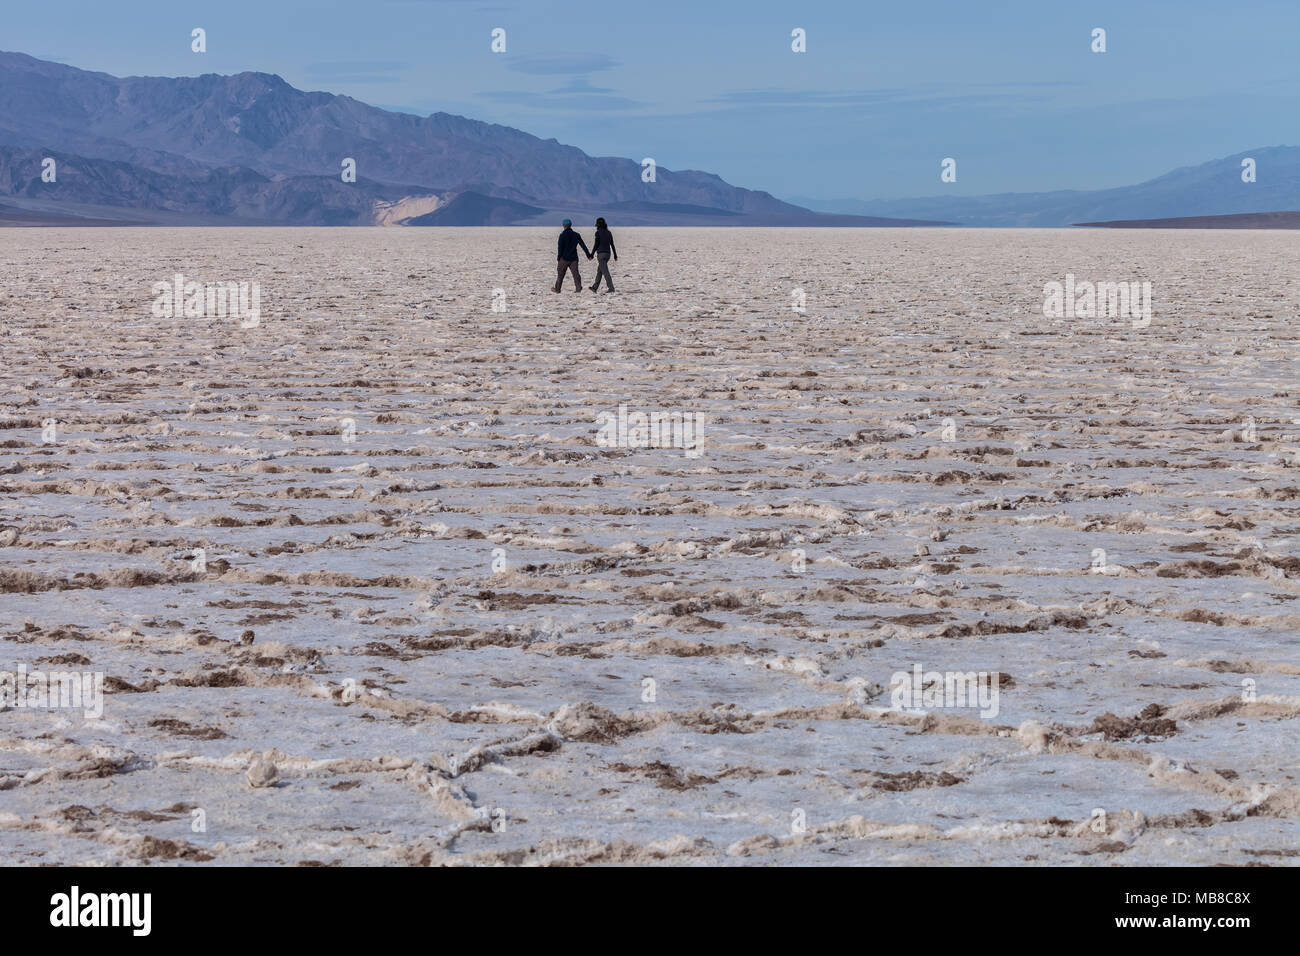 Couple were holding hand and hiking in Badwater Basin in Death Valley National Park, California, United States. - Stock Image